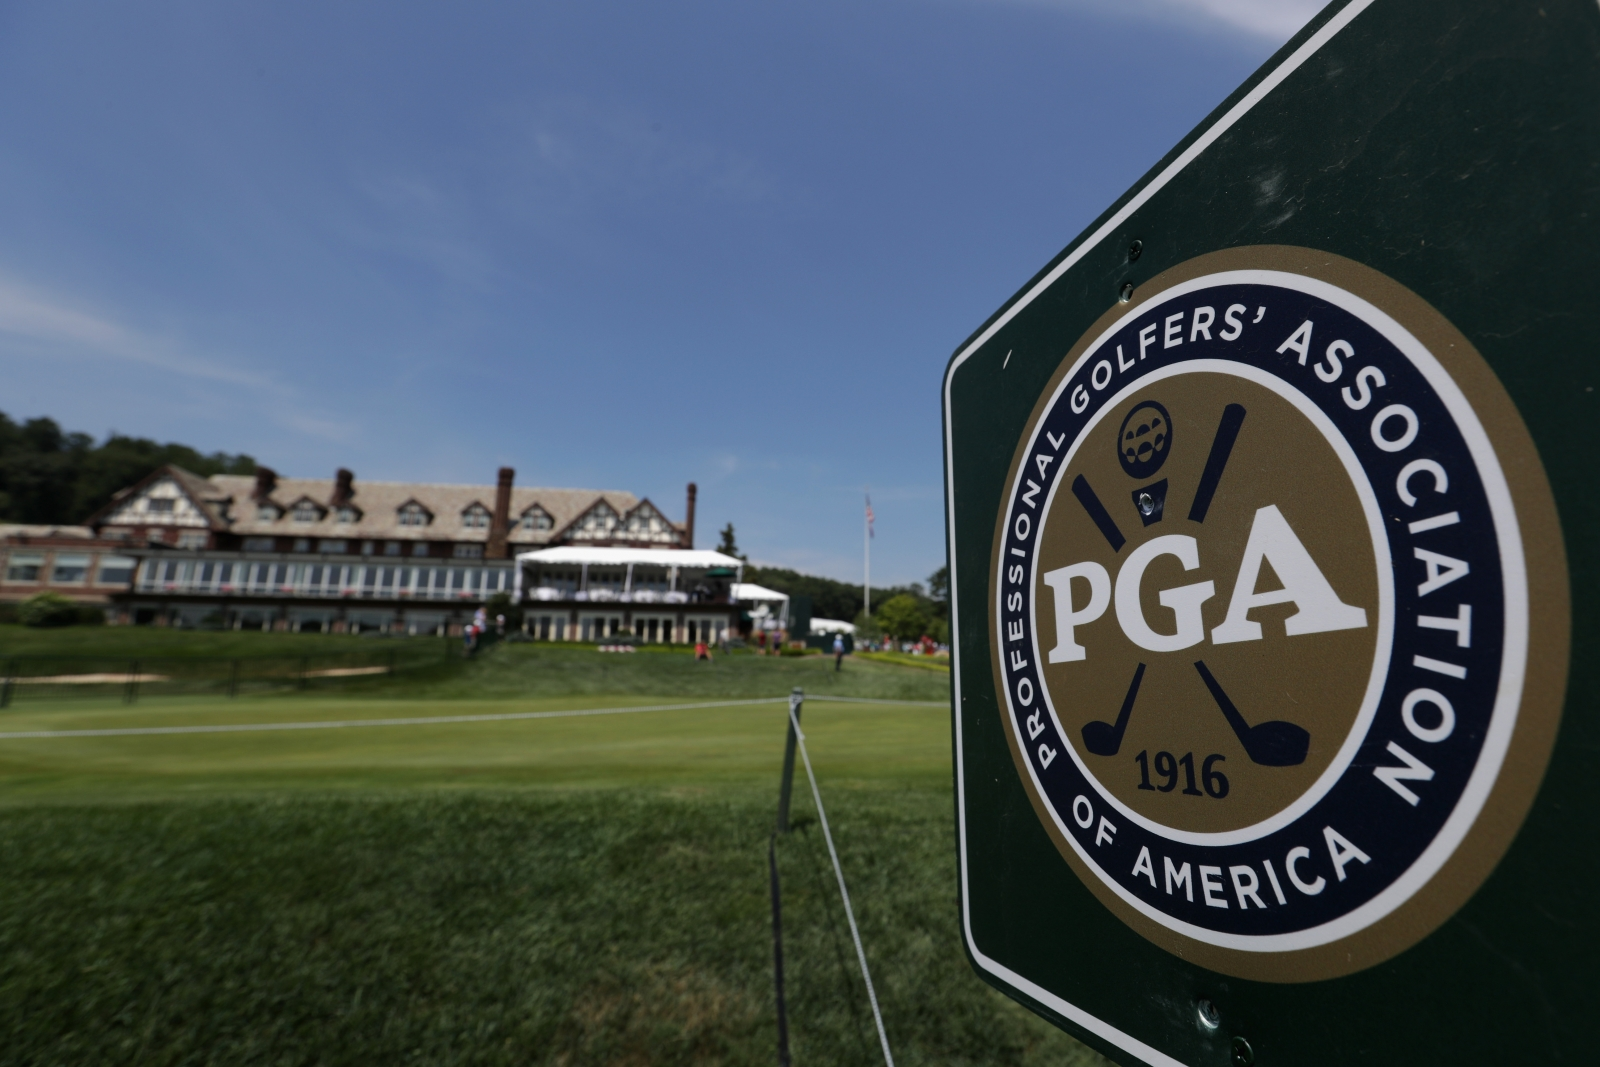 us pga latest